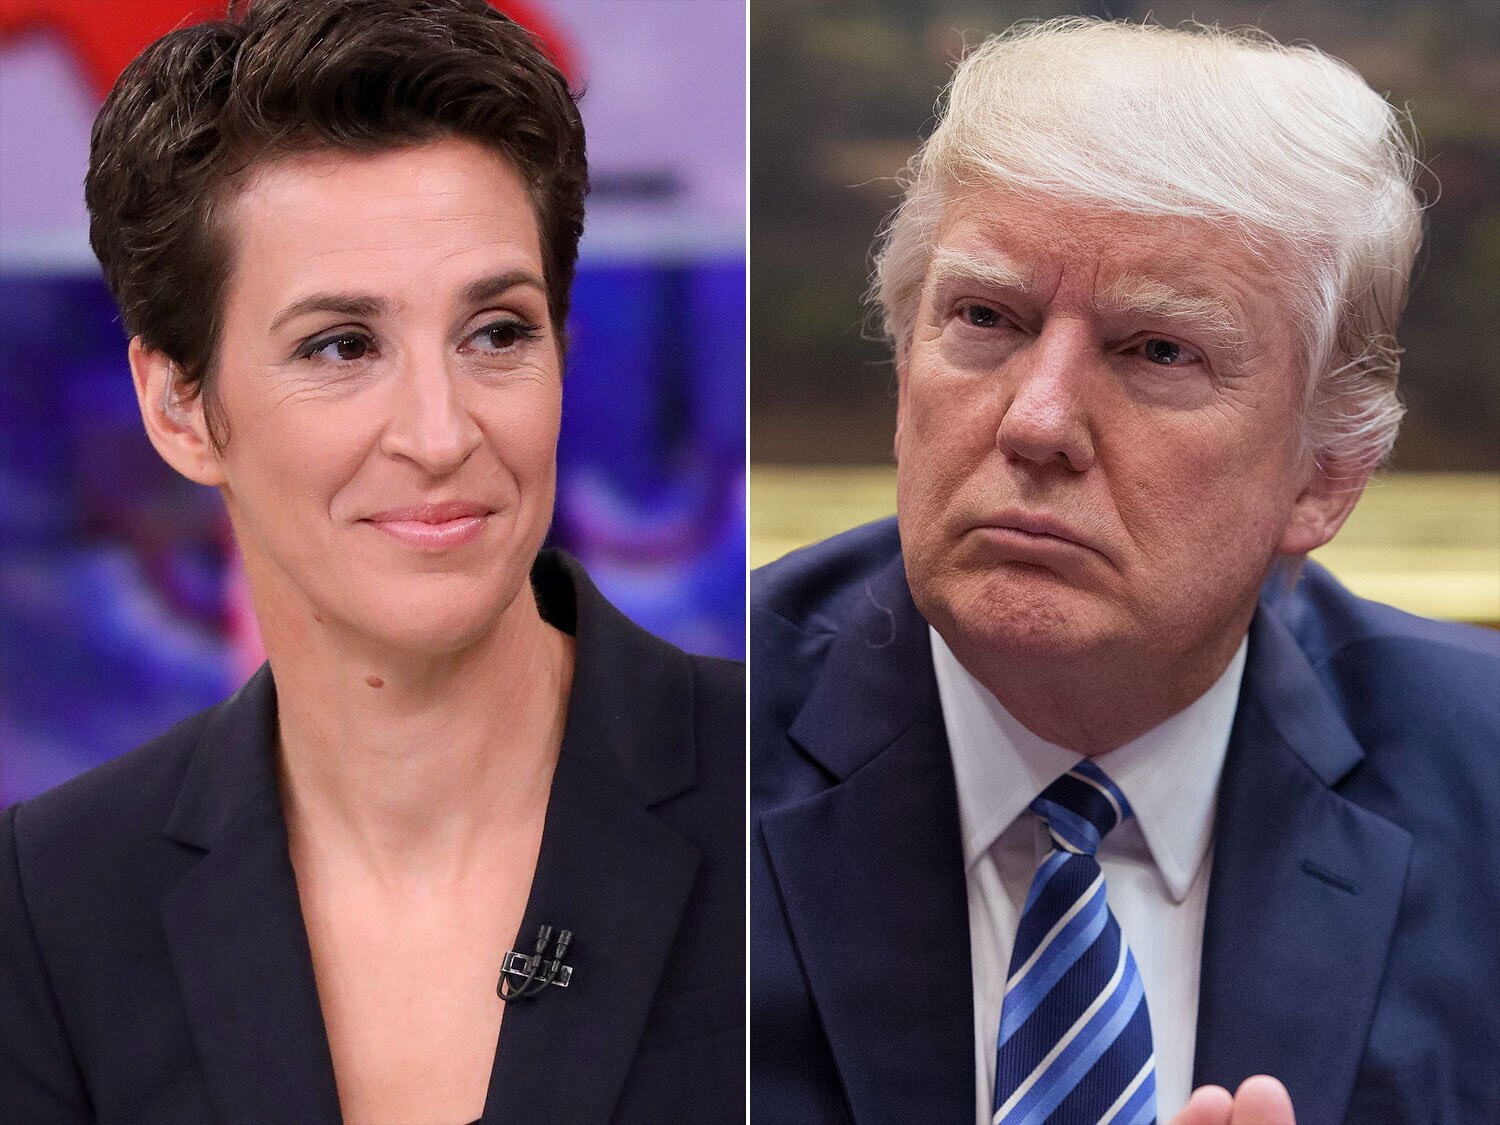 Rachel Maddow Explains Why Donald Trump May Yet Resign